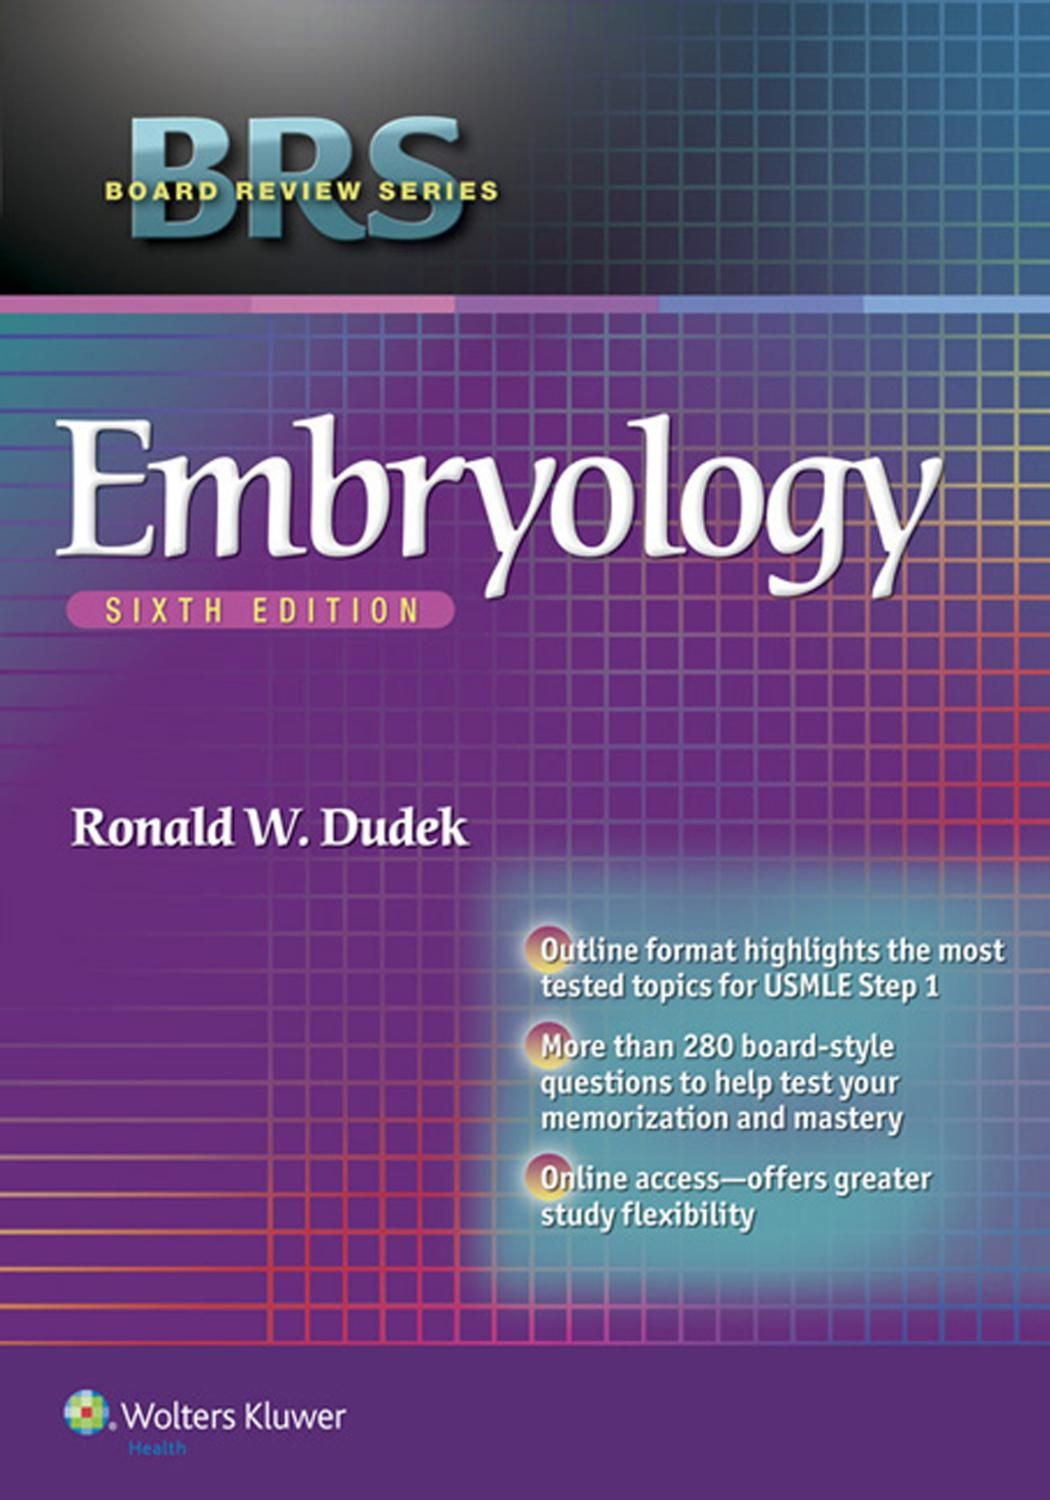 Brs Embryology 6th Edition Pdf Pdf Medical Students And Medical